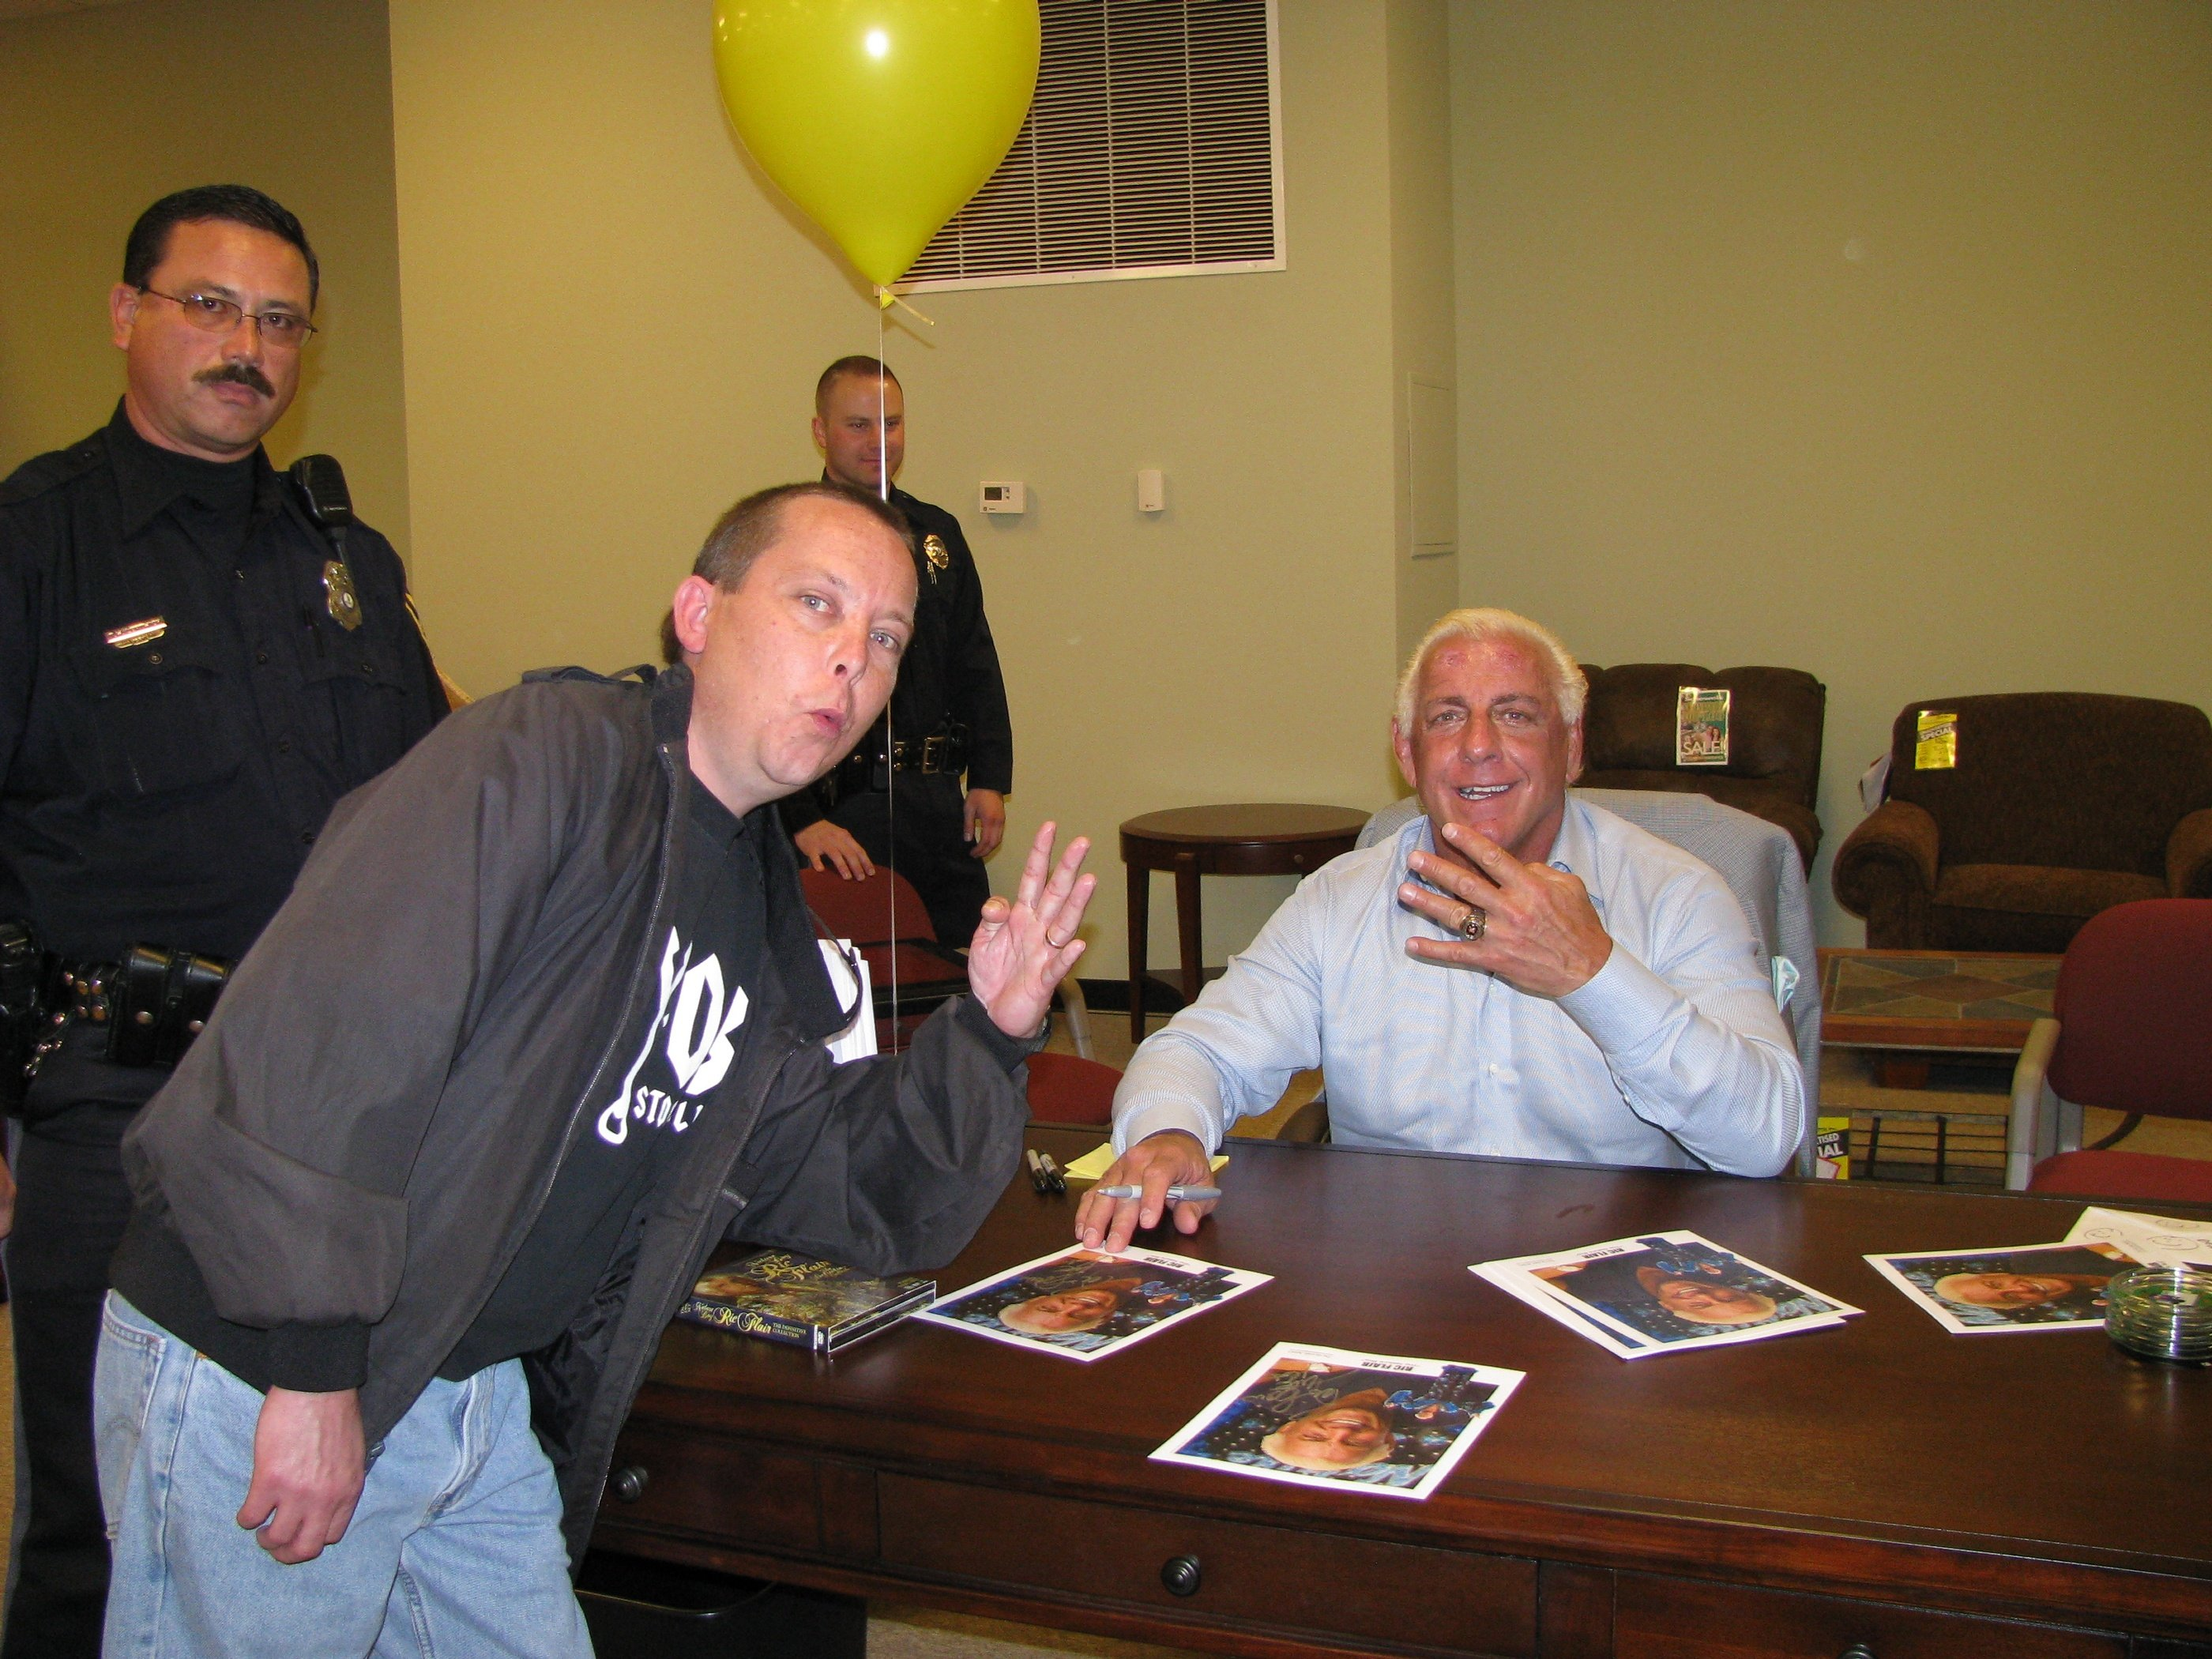 My Good Friend Iceman with the Nature Boy